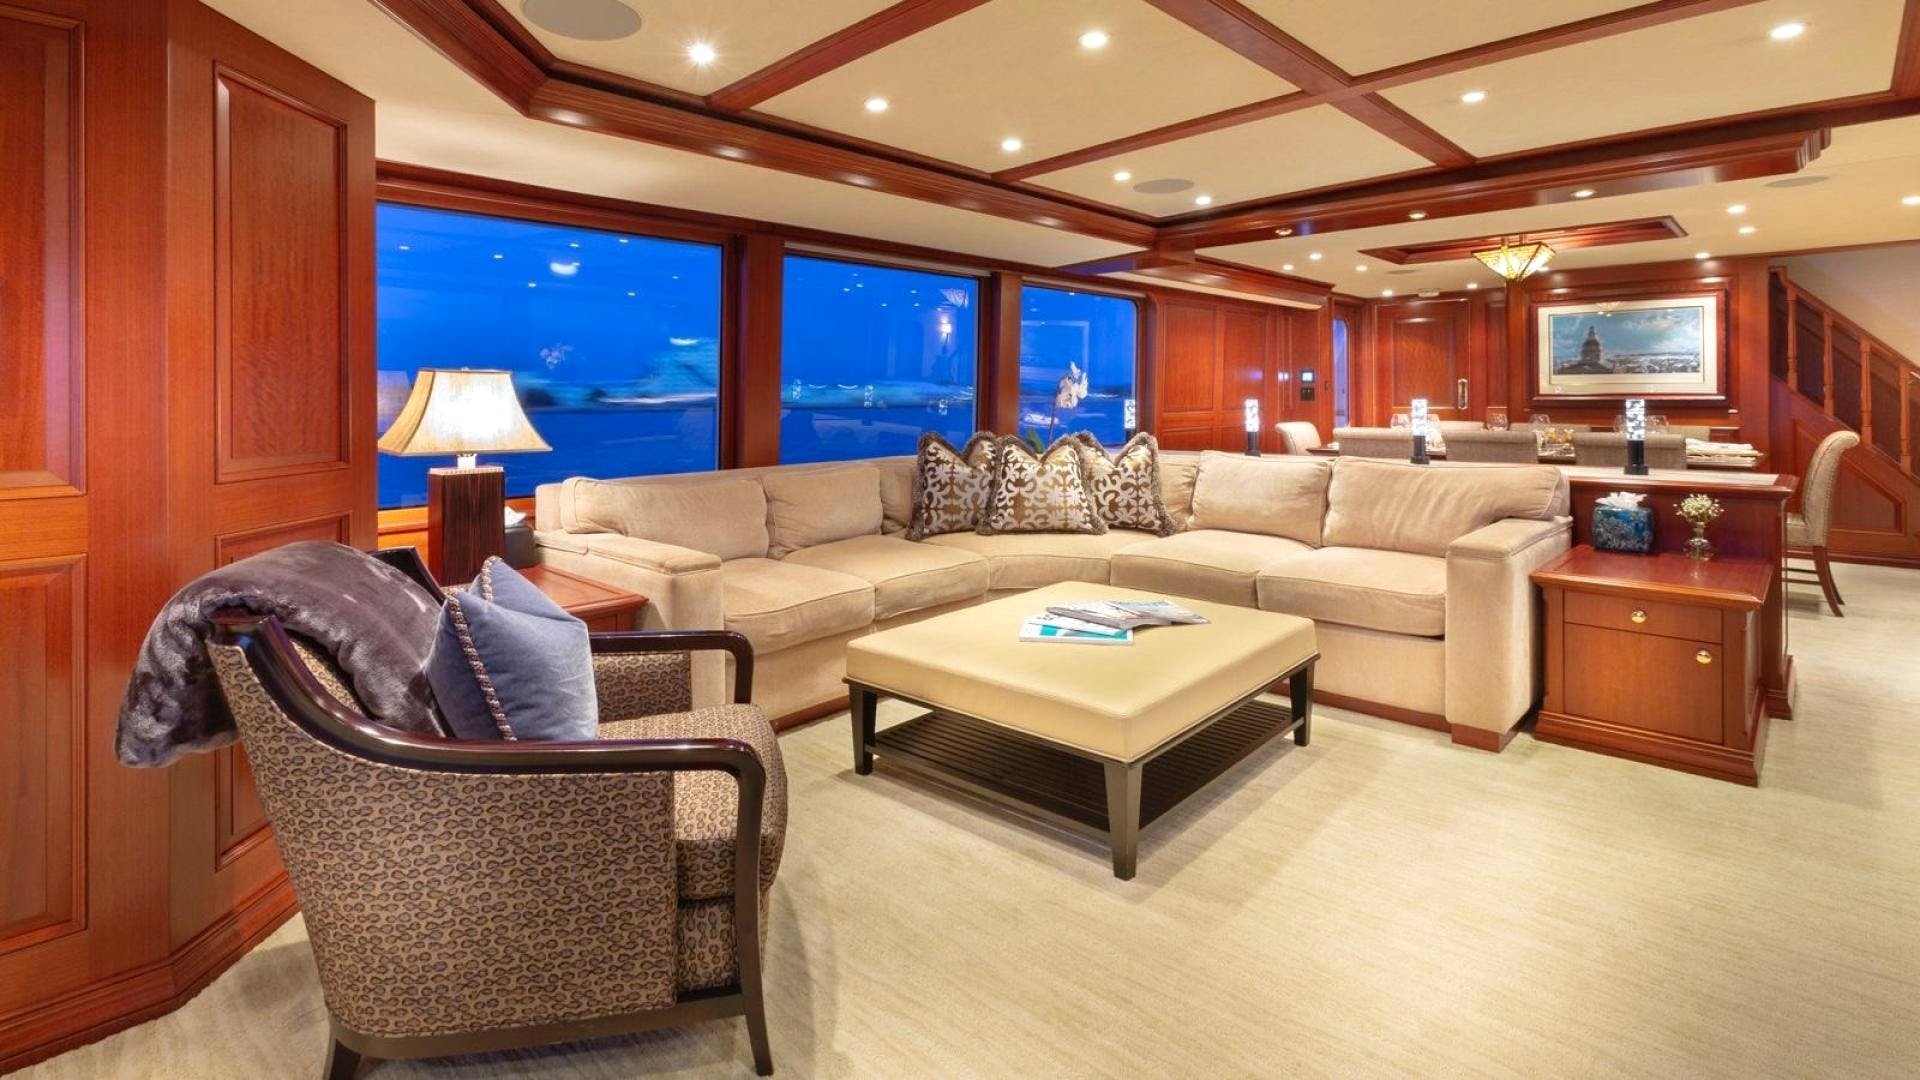 Seasonal Rates for IMPETUOUS Private Luxury Yacht For Charter